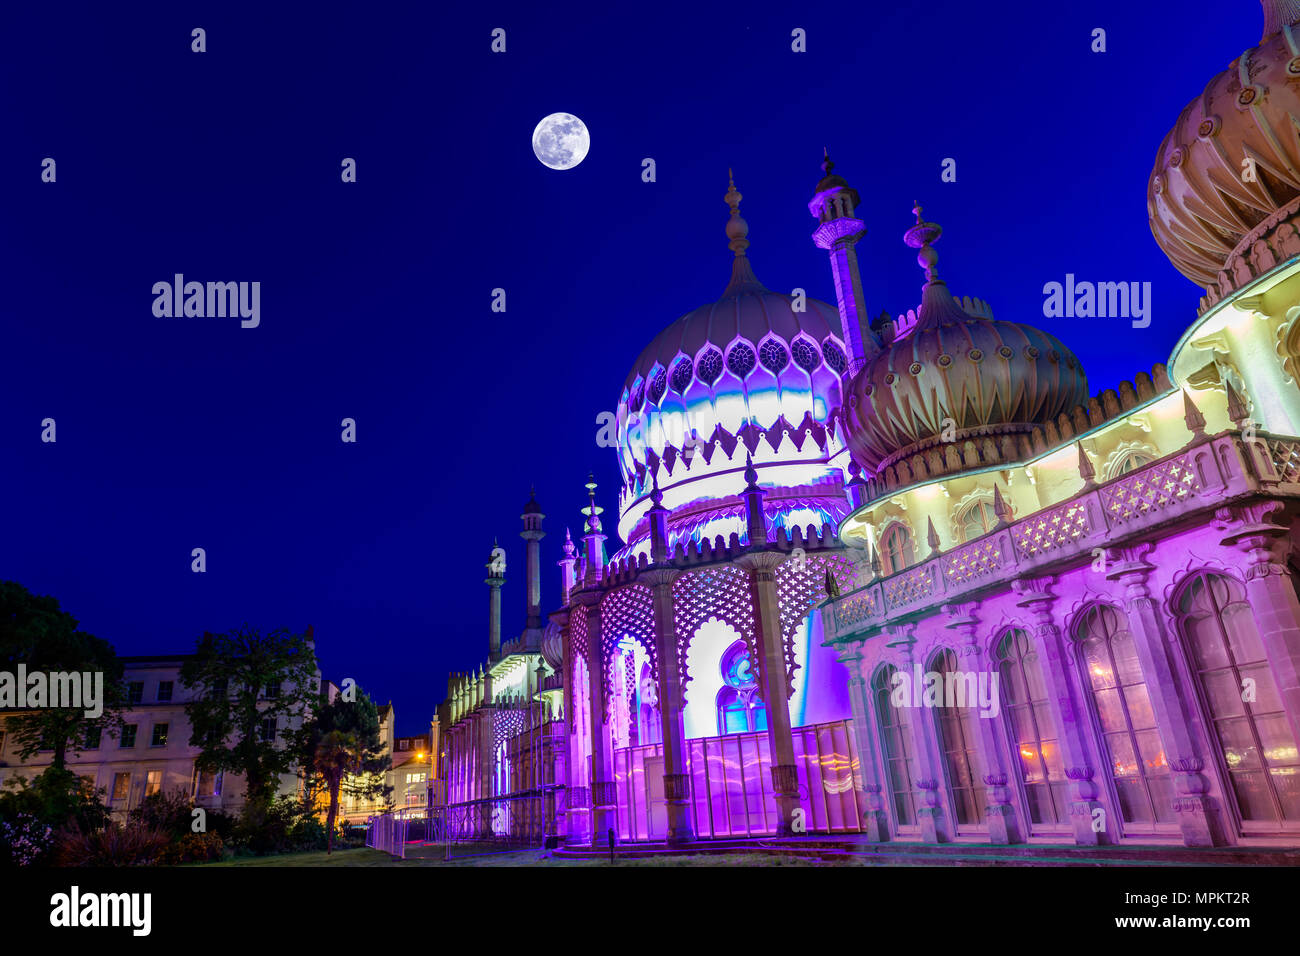 Royal pavilion Brighton at twilight. - Stock Image